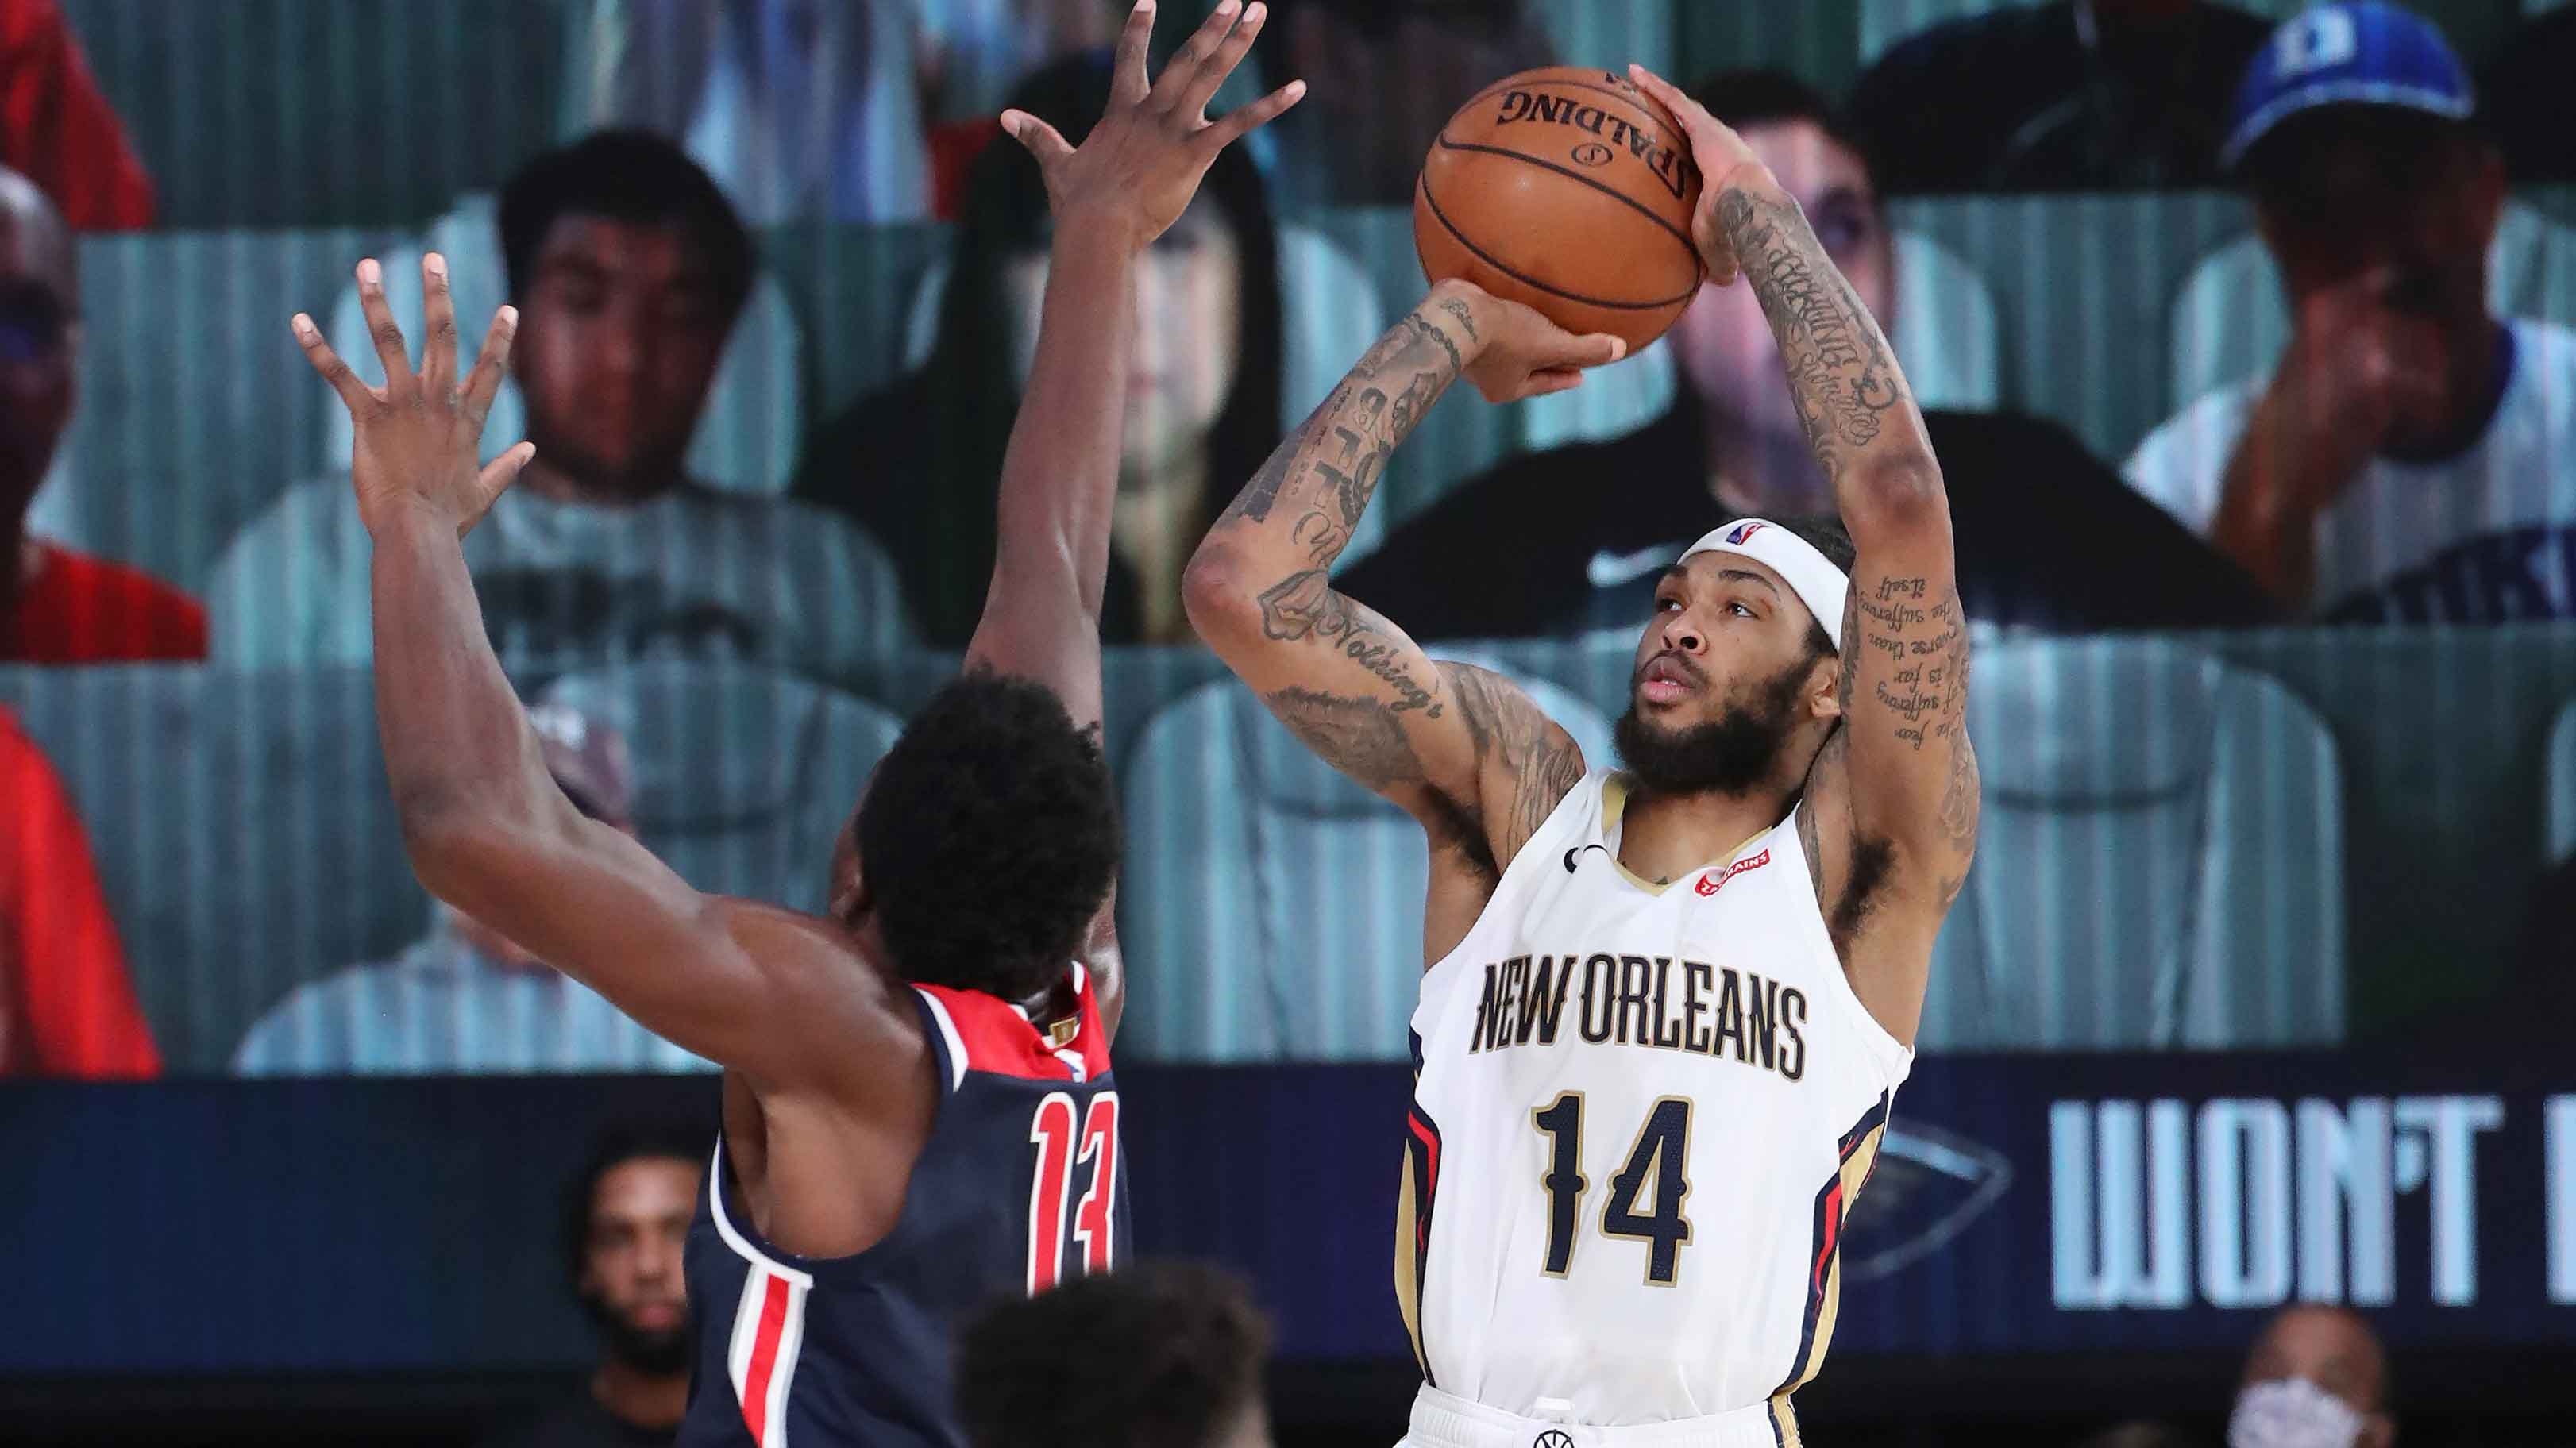 GAME RECAP: Pelicans 118, Wizards 107